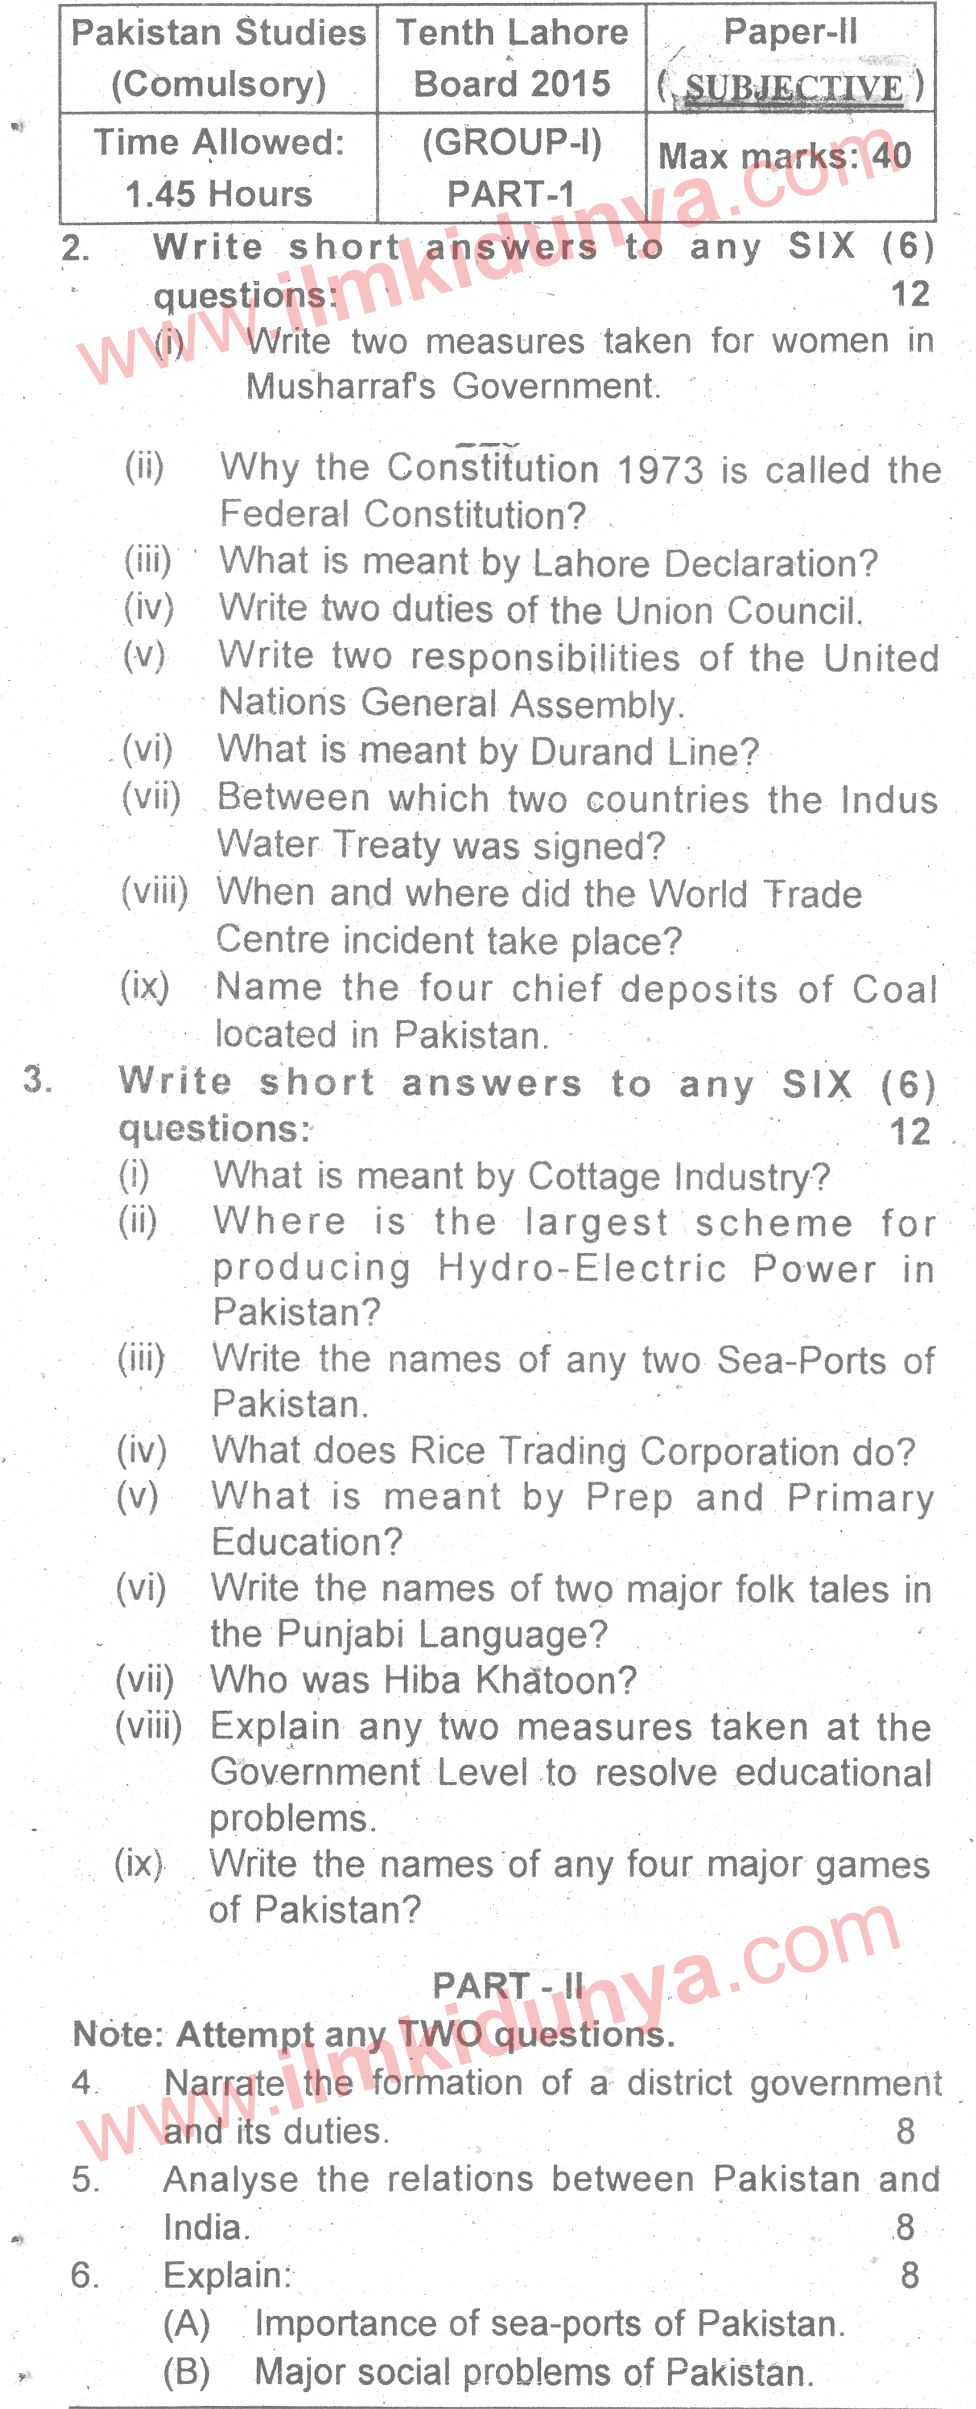 Past Papers 2015 Lahore Board 10th Class Pak Studies Subjective ...